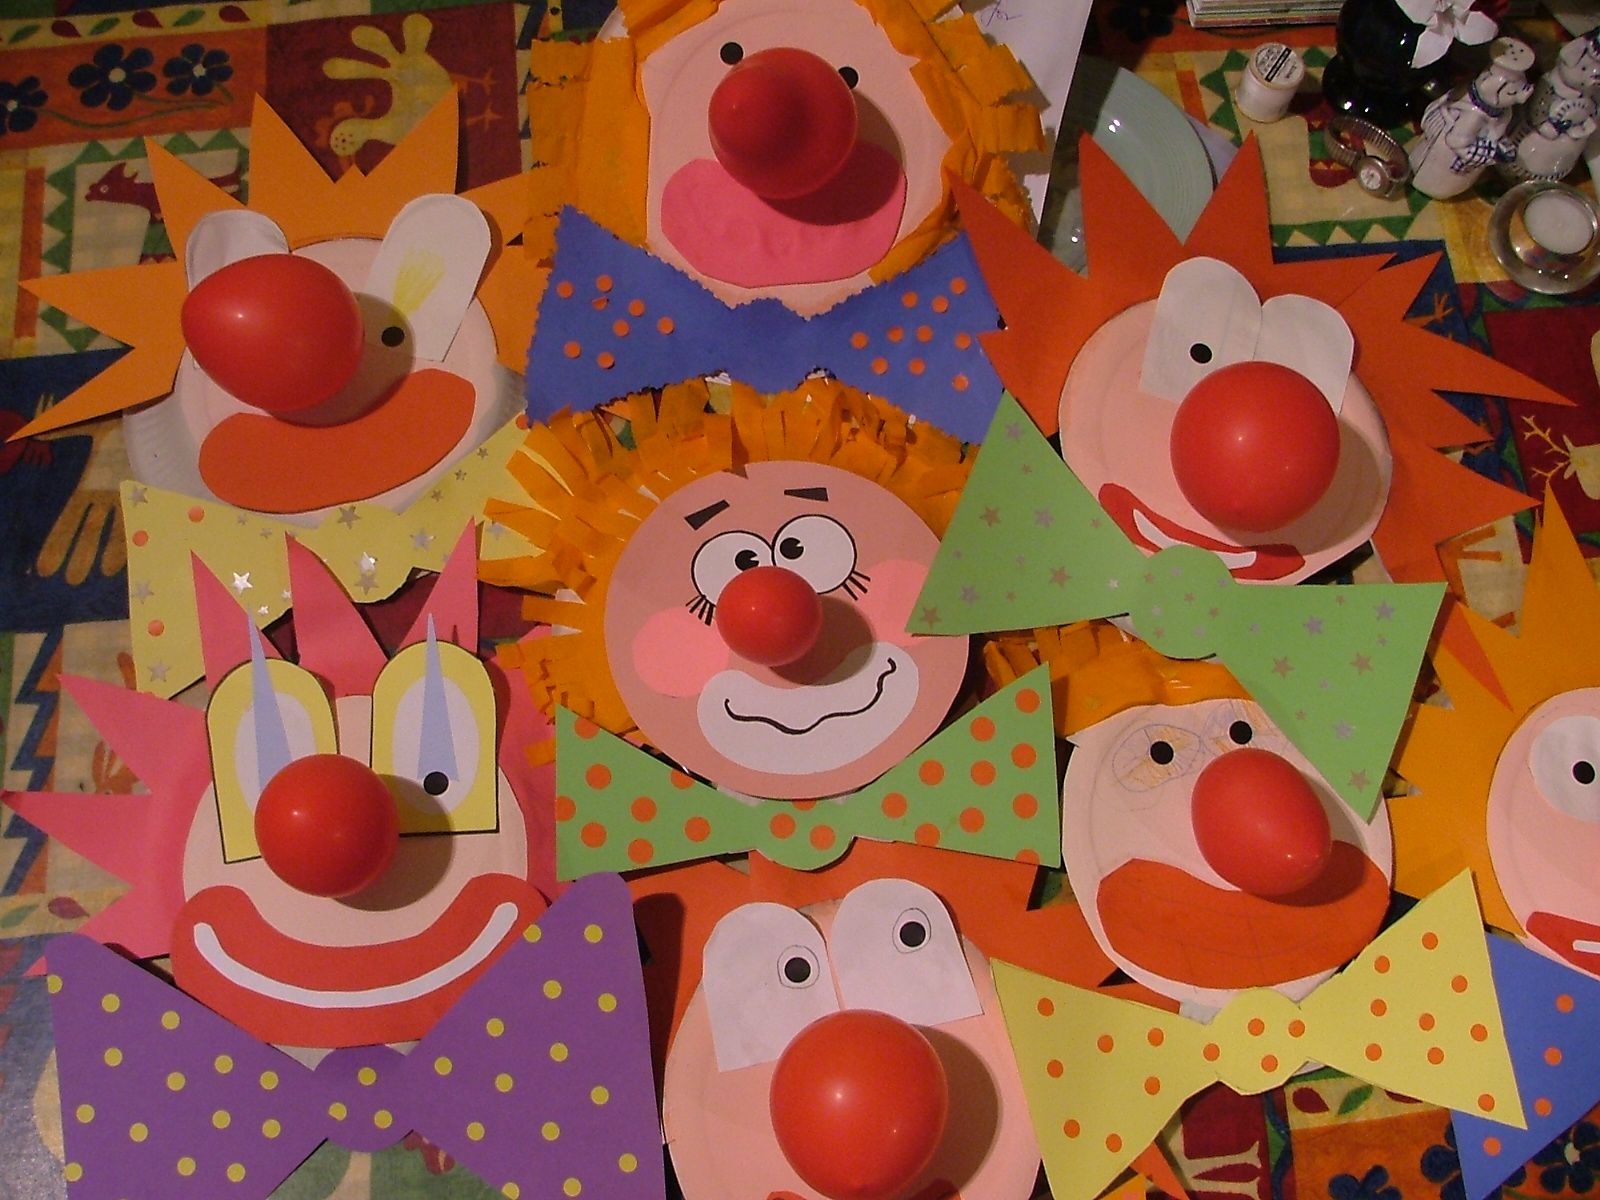 Paper plate clowns fasnacht pinterest fasching - Clown basteln kindergarten ...